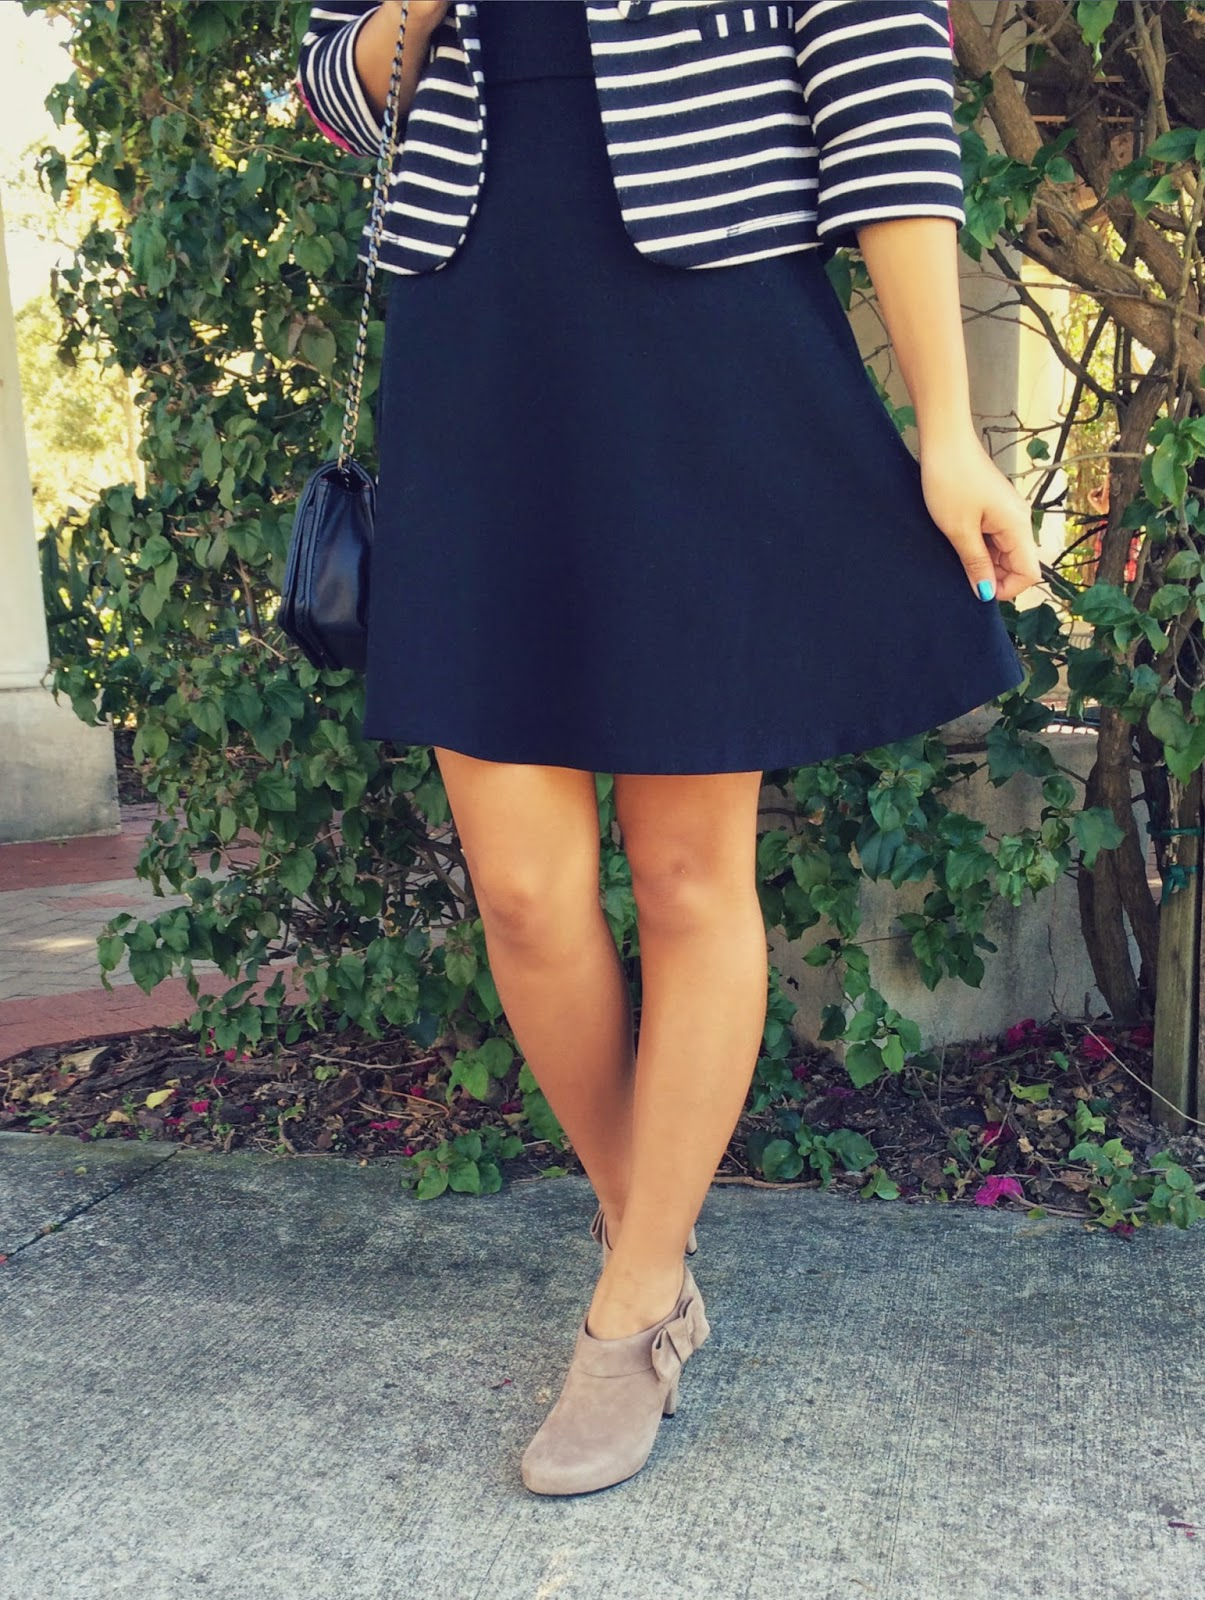 dressy valentine's day outfit idea, date outfit